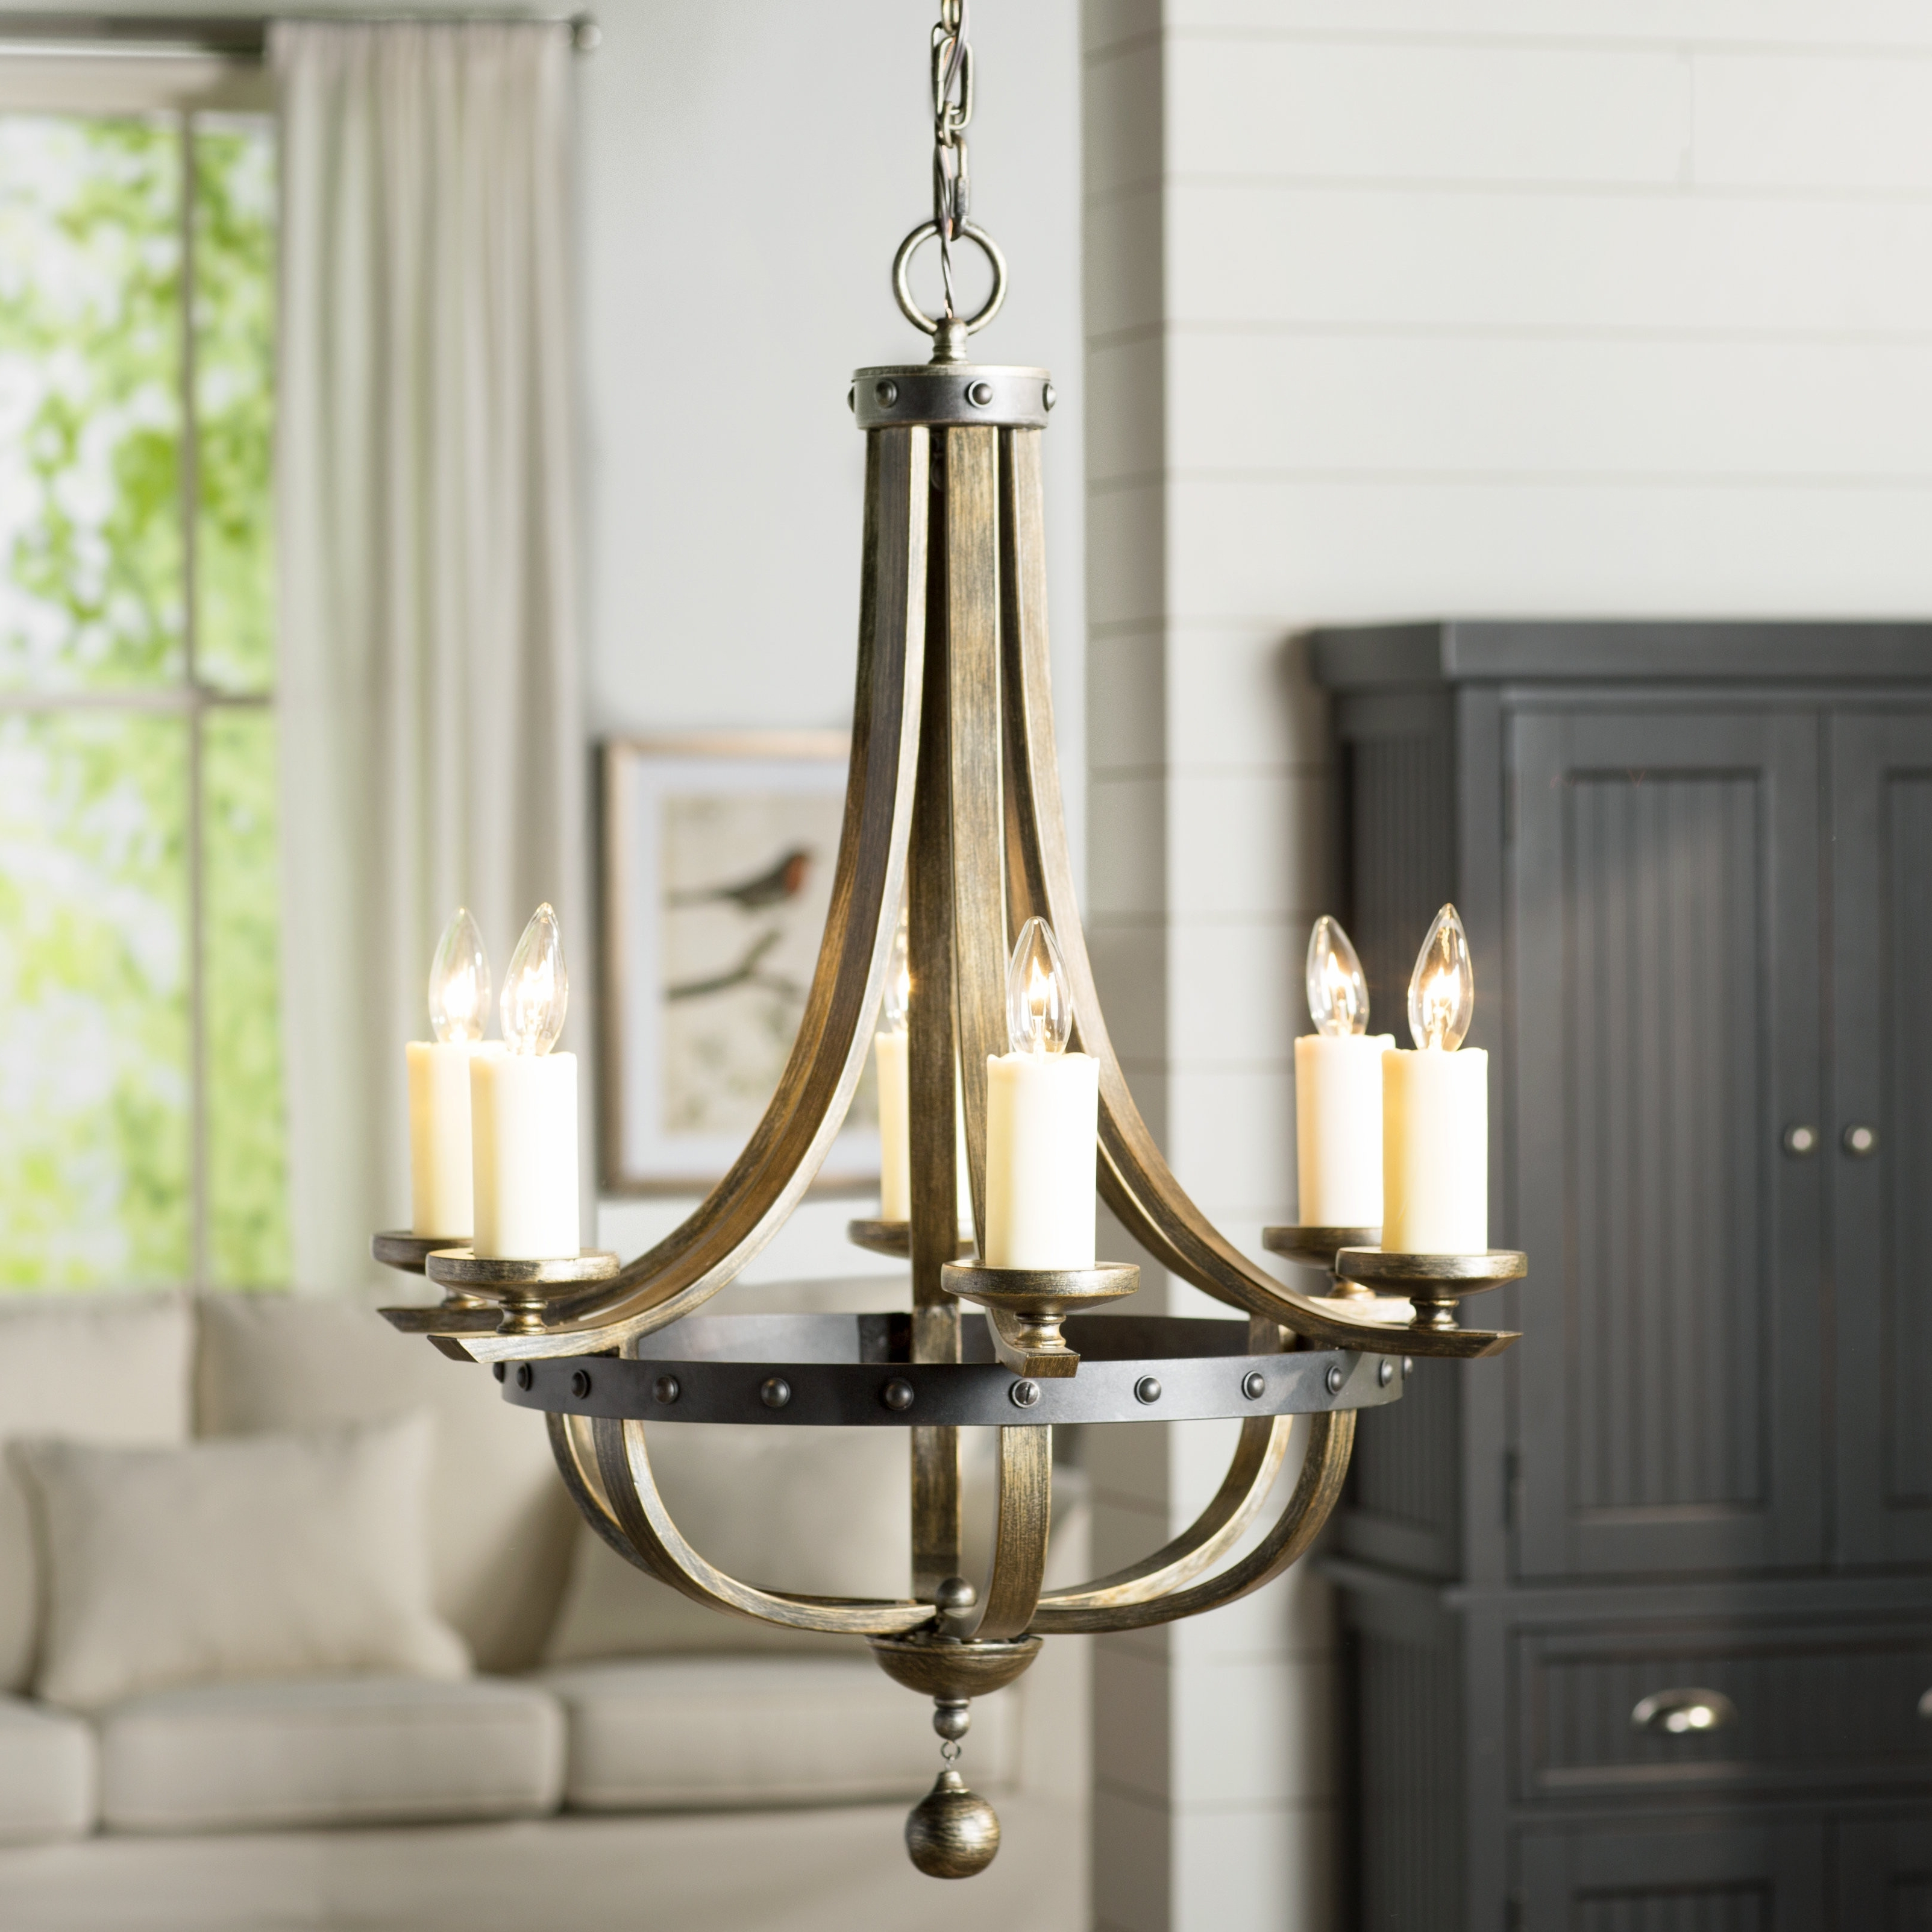 Trendy Hanging Candle Chandeliers Pertaining To Chandeliers : Hanging Candle Chandelier Luxury Wood Chandeliers You (View 14 of 20)